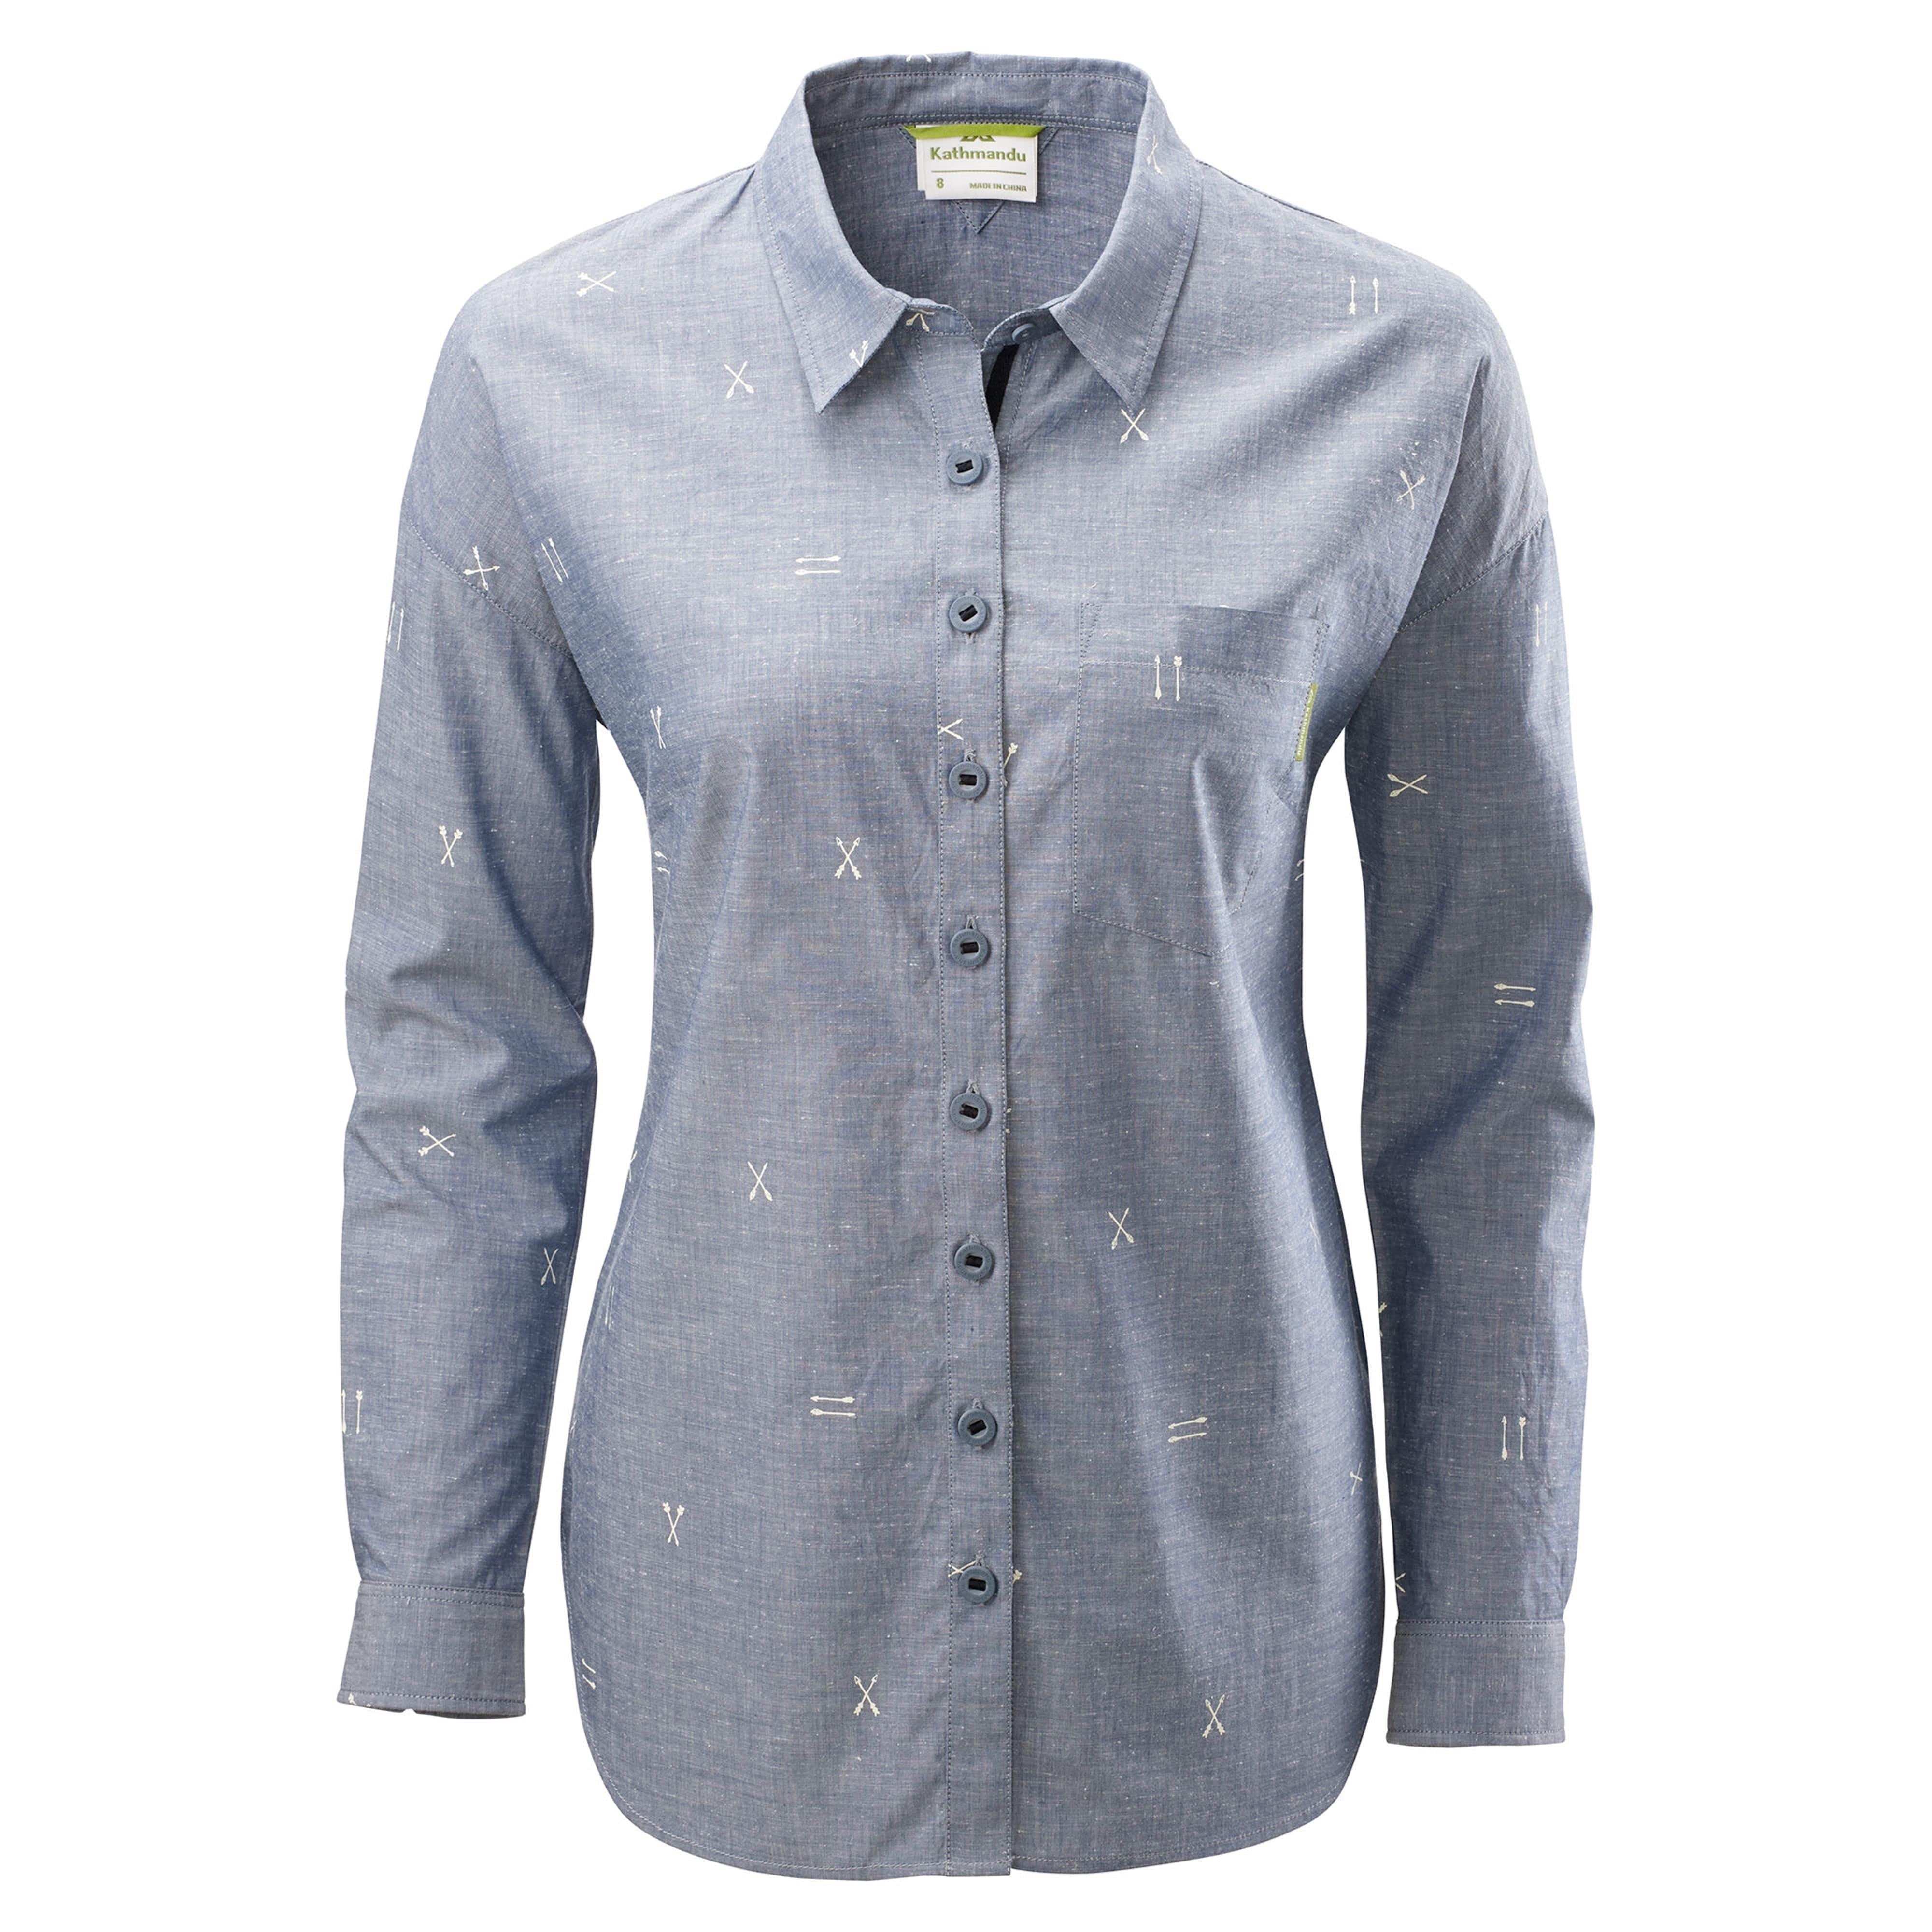 ba6516aa13a Federate Women s Shirt